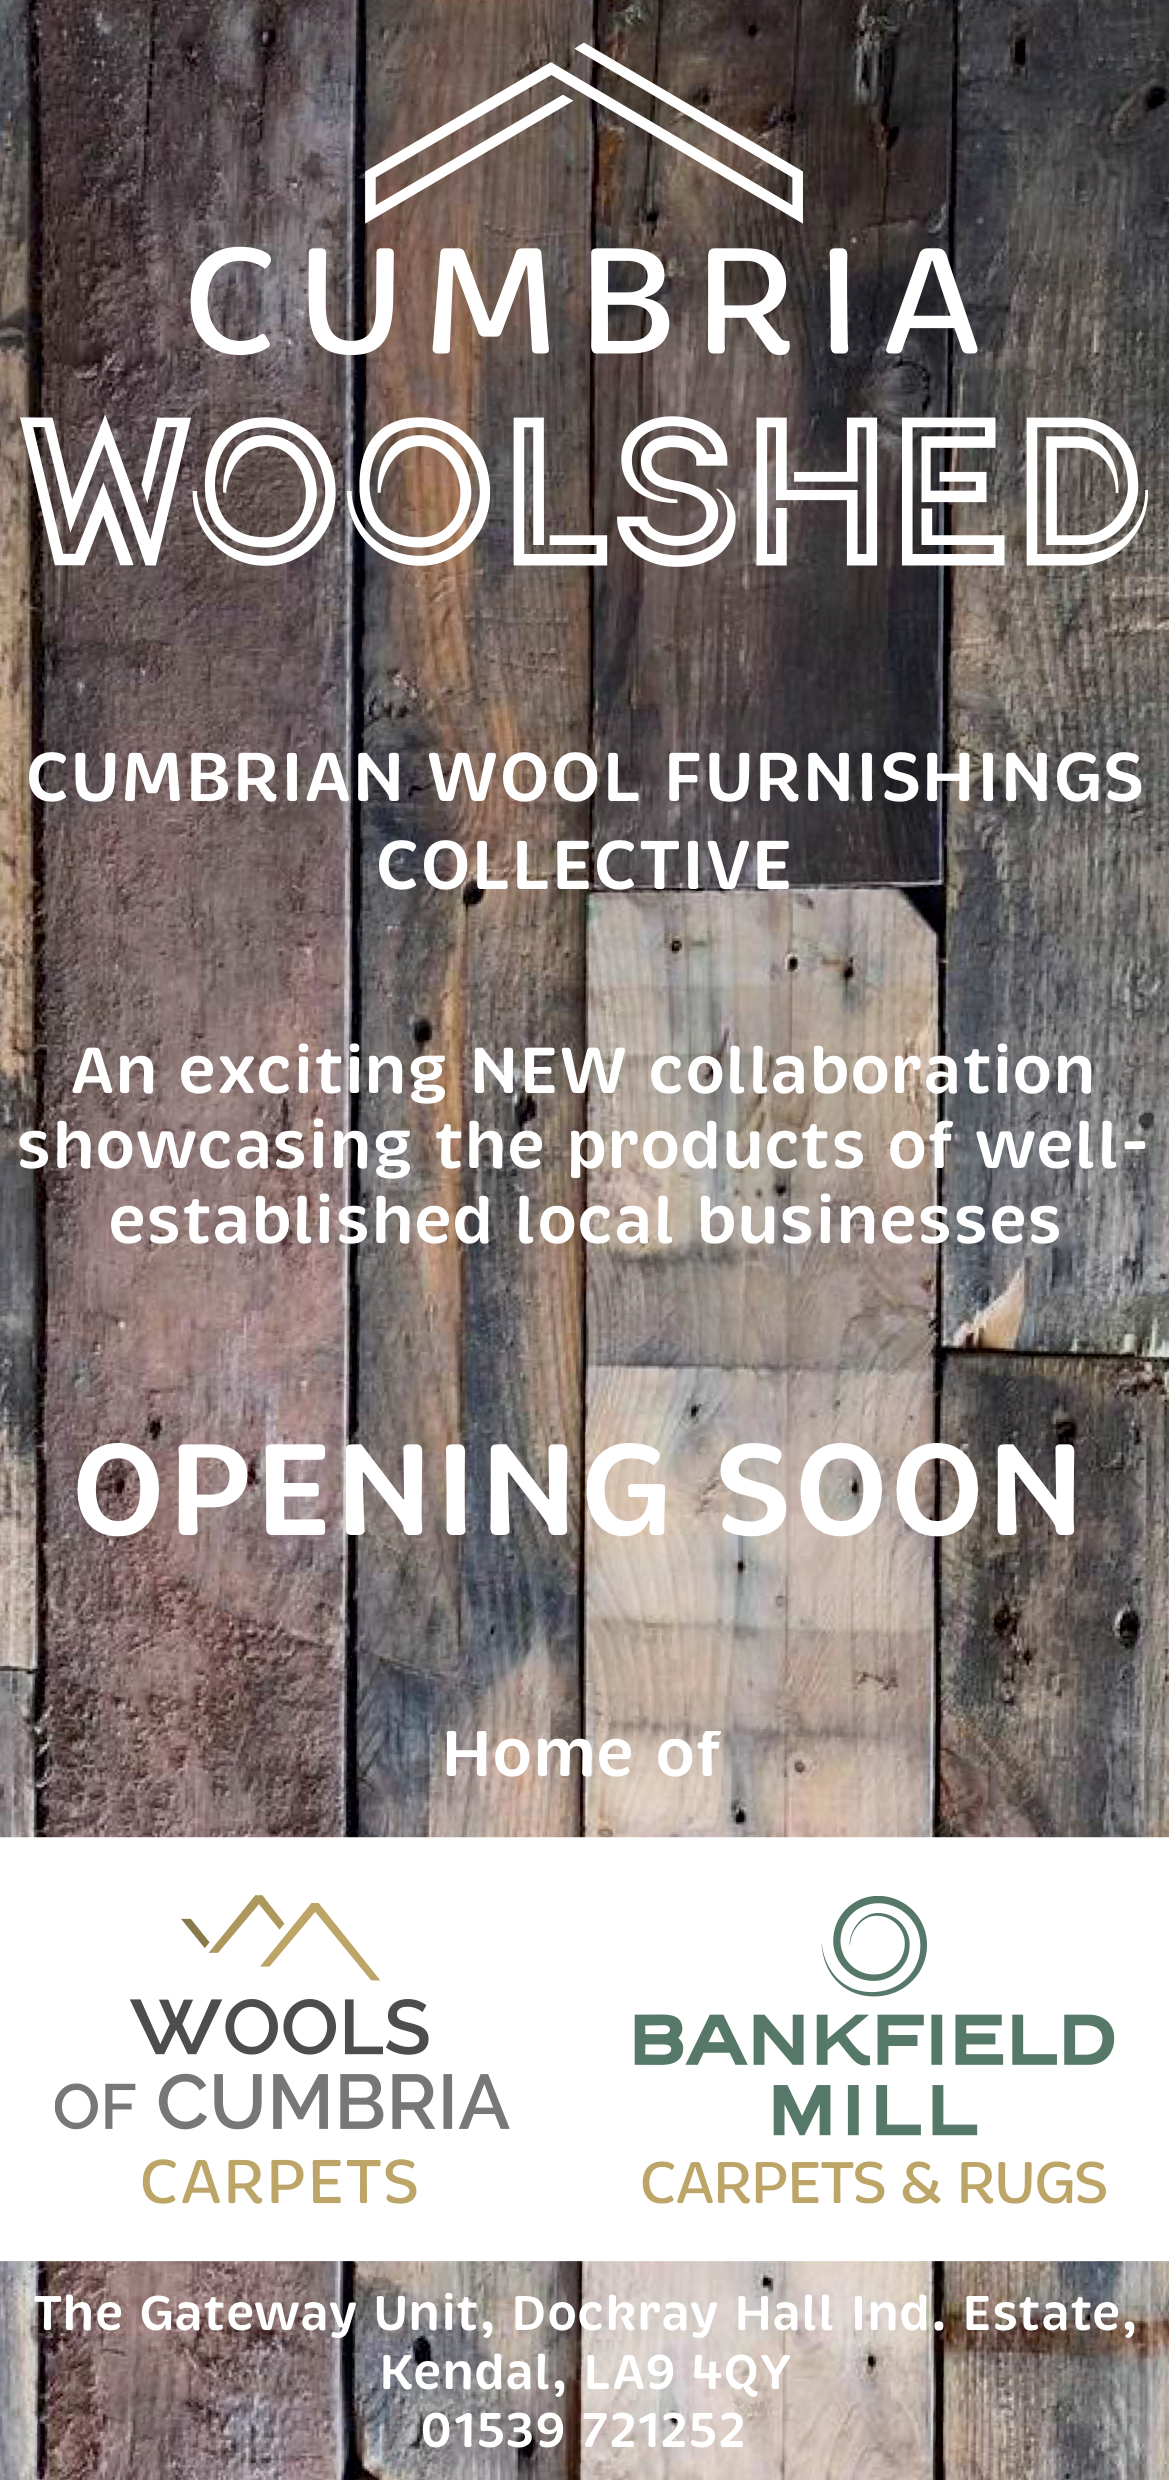 Coming soon to Bankfield Carpets and Rugs. - Watch this space for updates………..